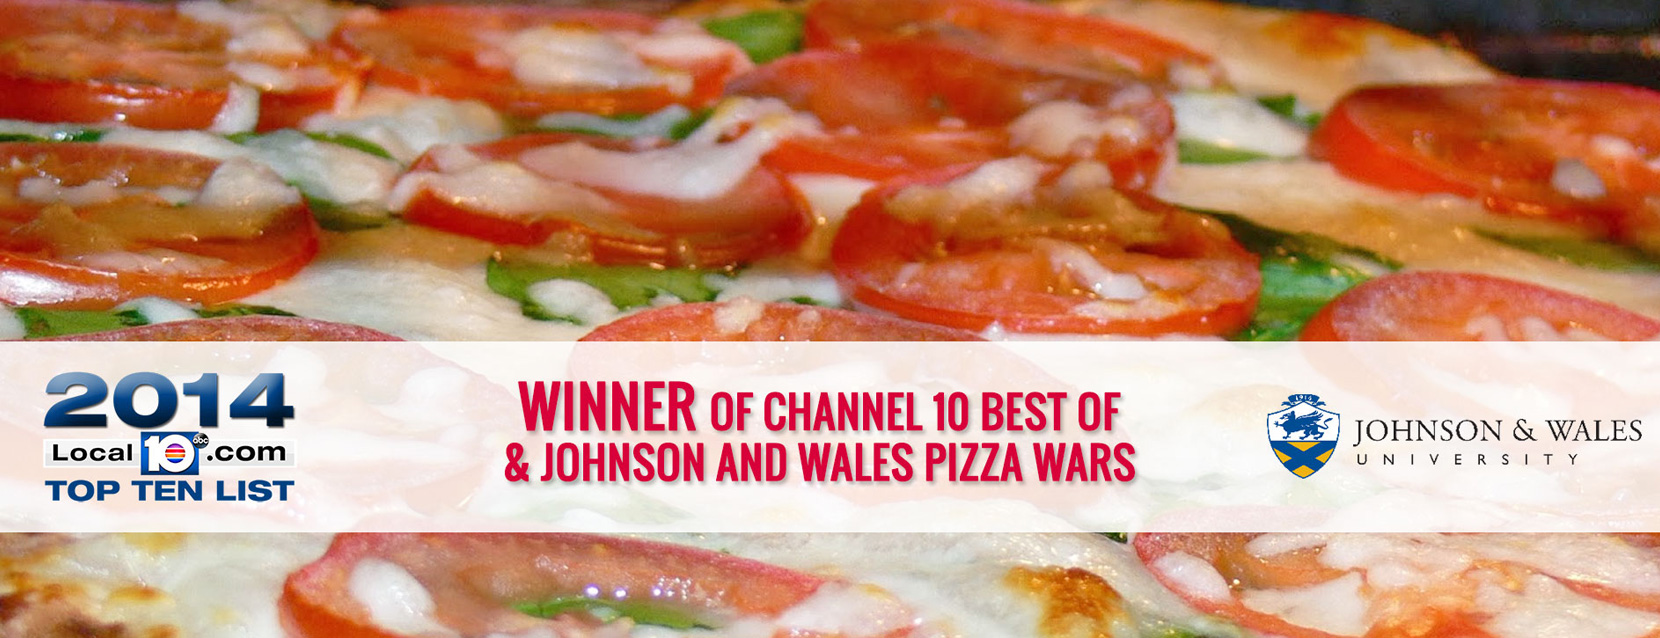 Winner of Channel 10 Best Of & Johnson And Wales Pizza Wars